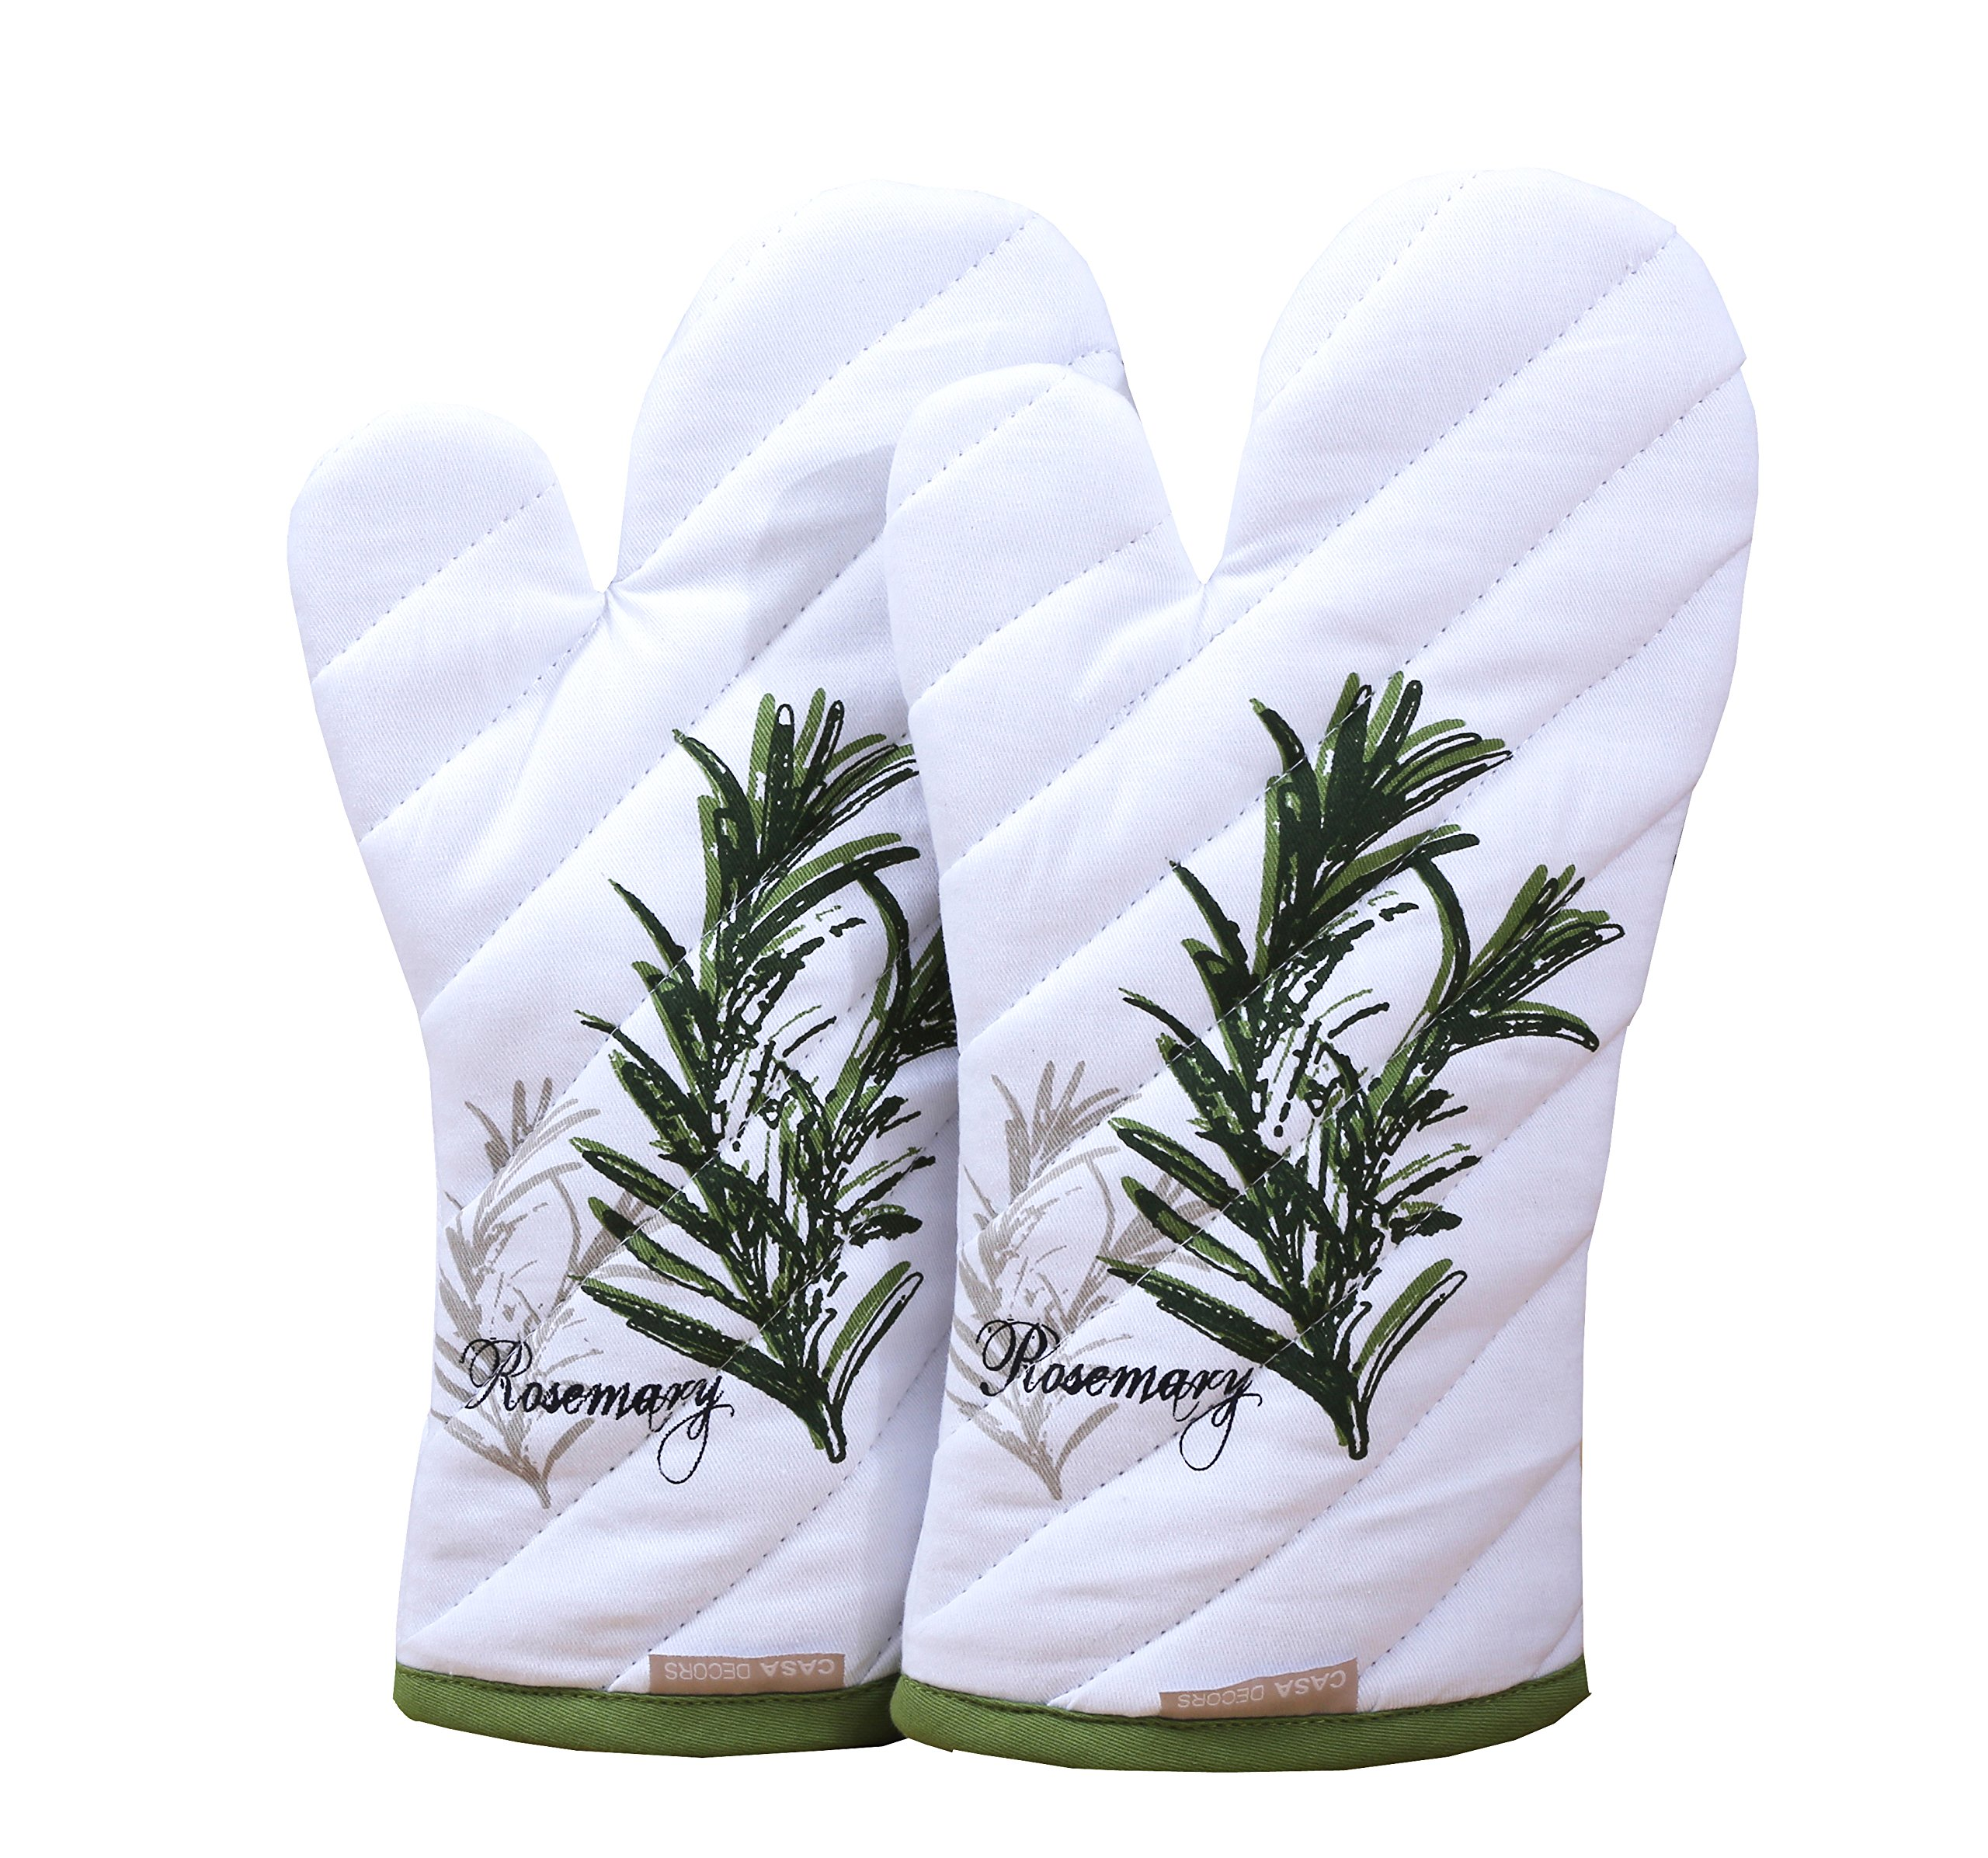 Oven Mitts, Unique Herb Garden Design, Oven Mitts Heat Resistant, Made of 100% Cotton, Eco-Friendly & Safe, Set of 2, Oven Mitt size 7 x 13 Inches , Machine Washable, Kitchen Oven Mitts By CASA DECORS